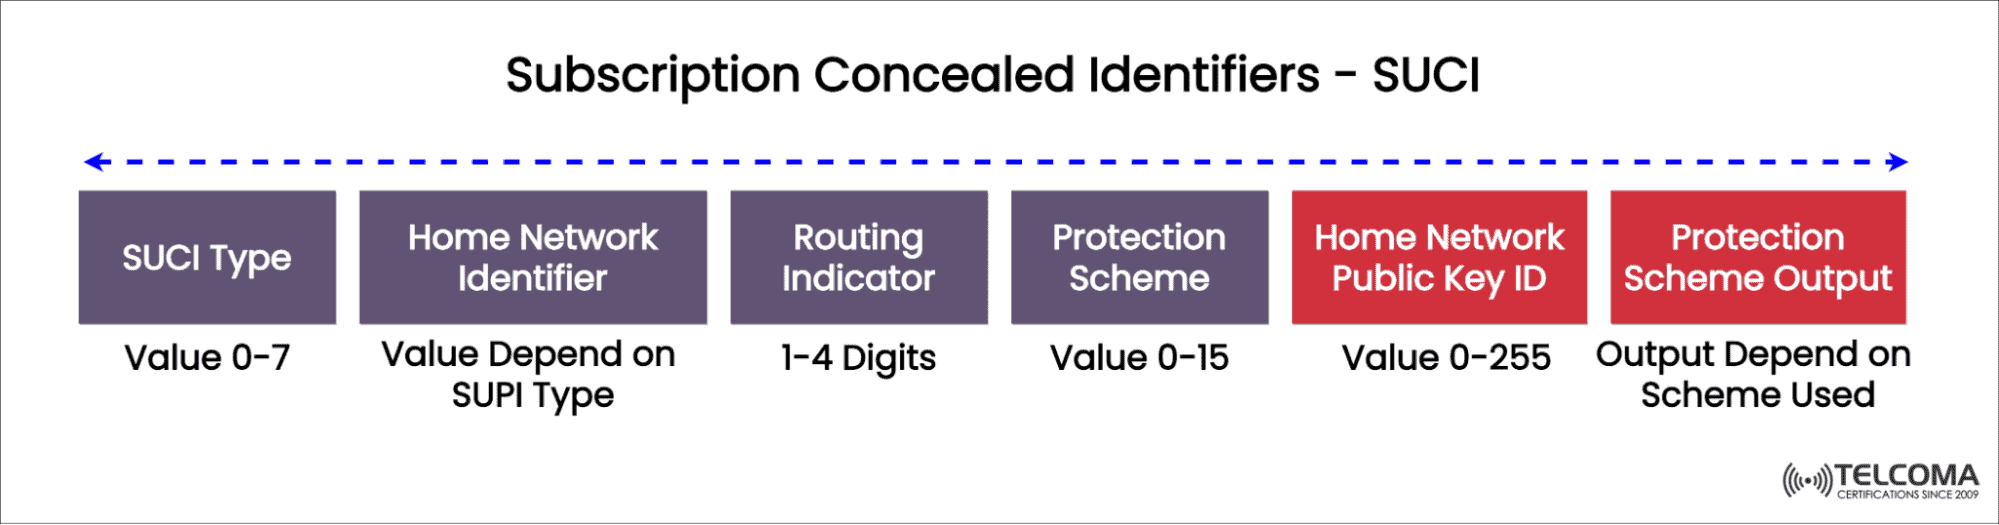 SUCI Subscriber Concealed Identifier